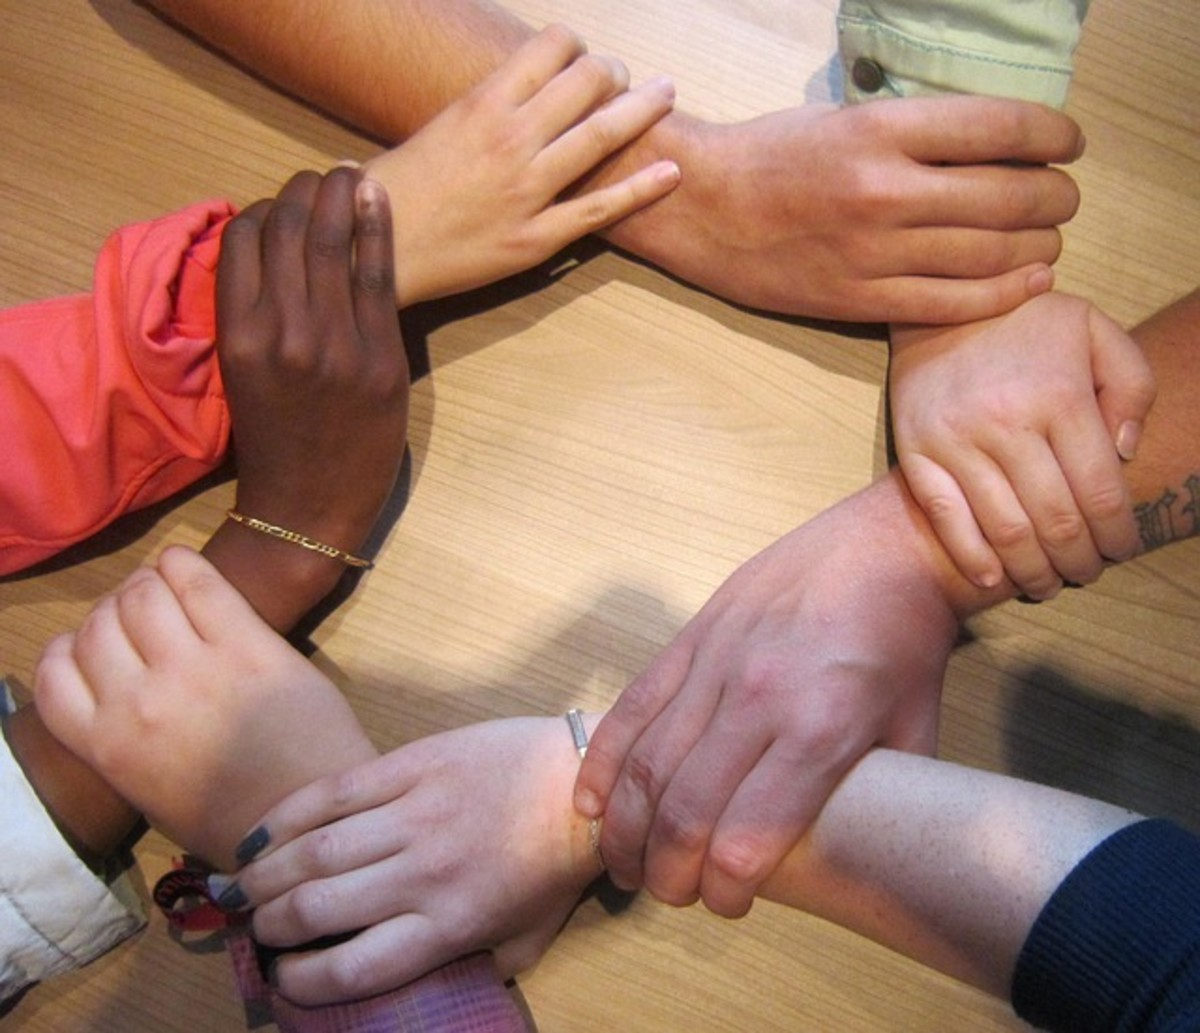 Hands are joined together, locked in love, symbolic of solidarity, diversity and acceptance.